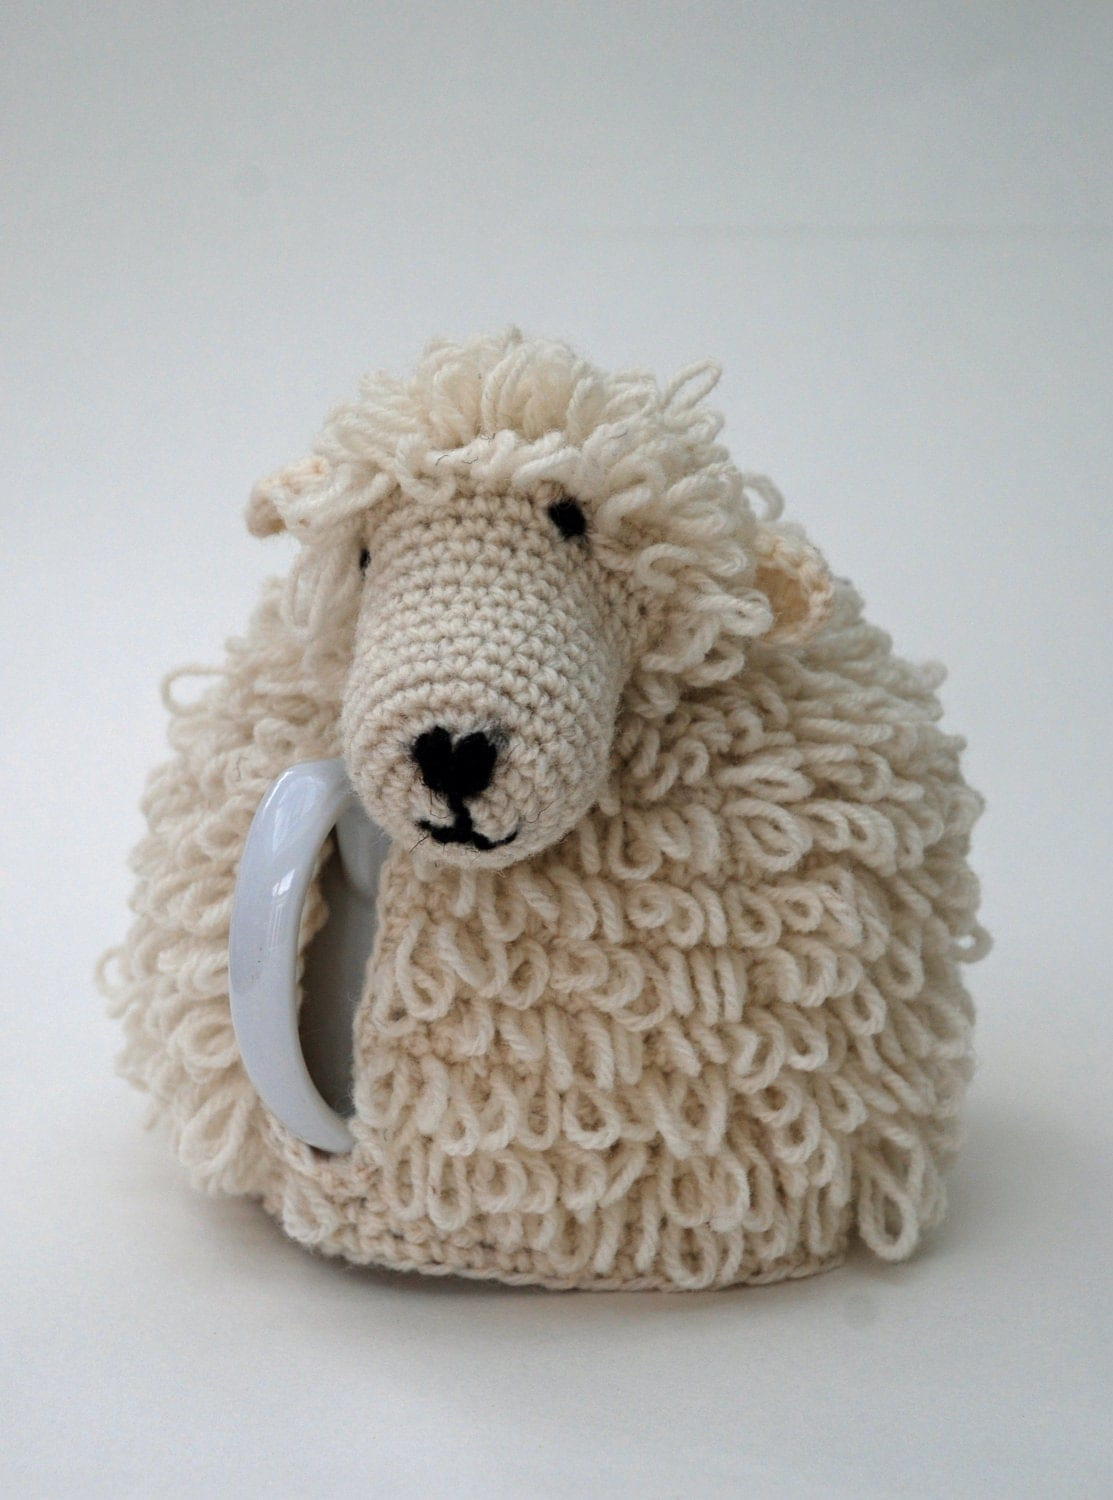 Sheep tea cosy crochet kit from woollychicdesigns on etsy studio sheep tea cosy crochet kit bankloansurffo Gallery